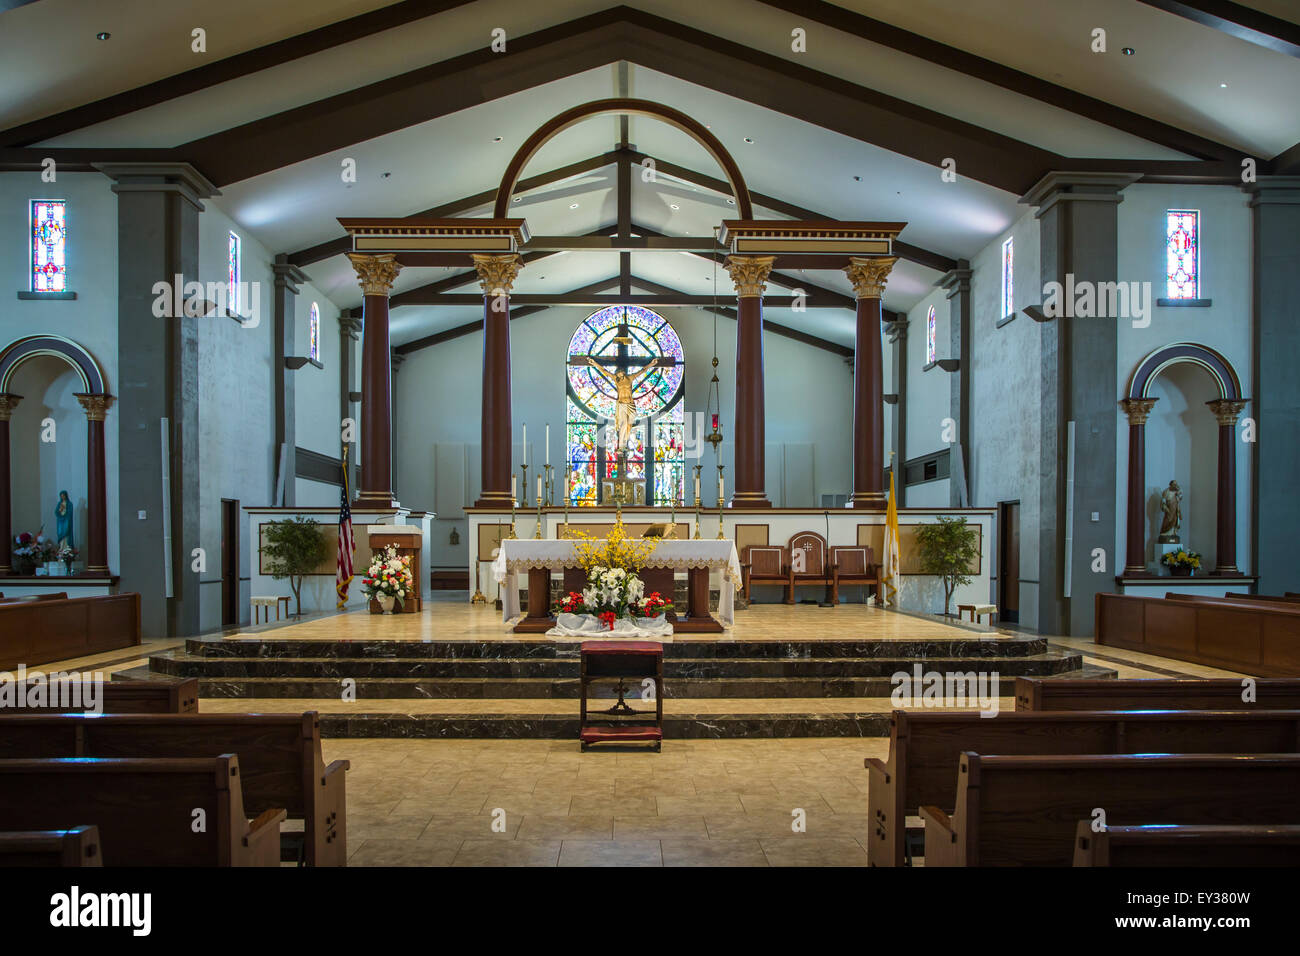 The interior sanctuary of the Immaculate Conception Catholic Church in Cottonwood, Arizona, USA. - Stock Image